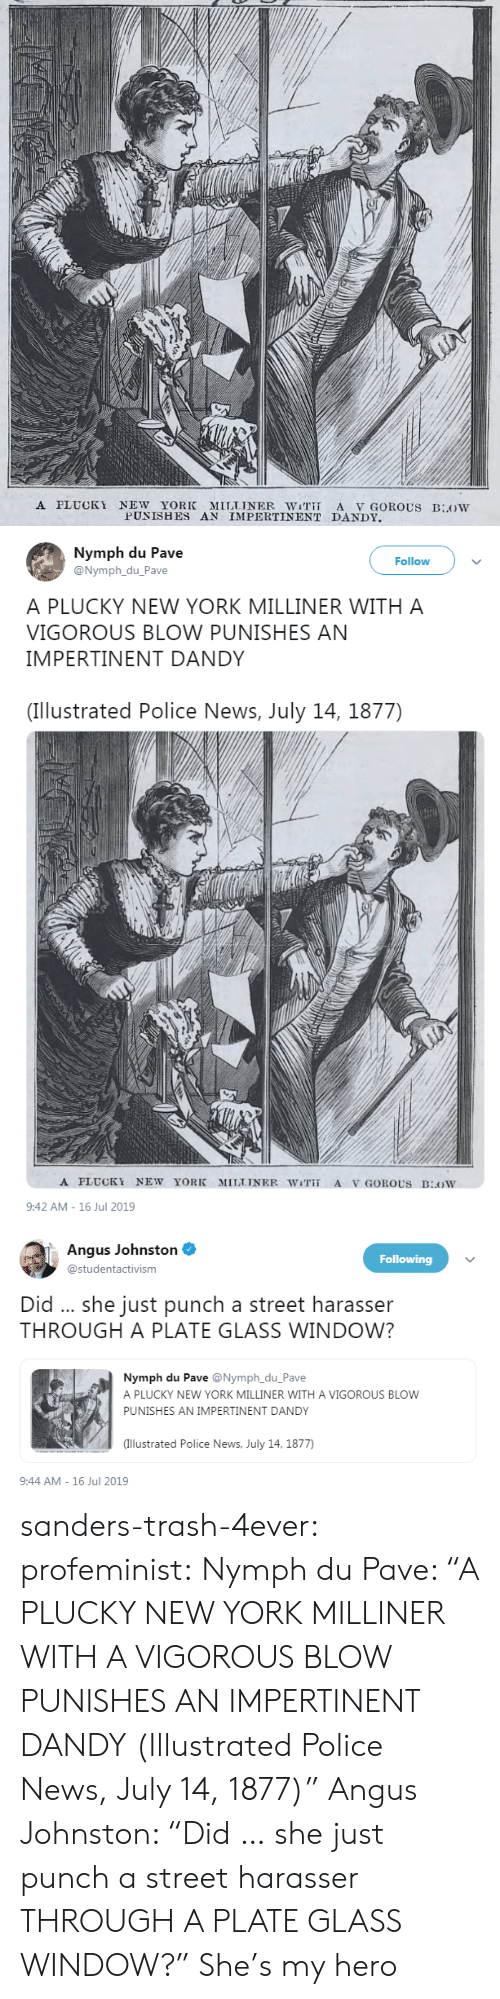 """New York, News, and Police: A PLUCKY NEW YORK MILLINER WiT A V GOROUS BLOW  PUNISHES AN IMPERTINENT DANDY   Nymph du Pave  @Nymph_du_Pave  Follow  A PLUCKY NEW YORK MILLINER WITH A  VIGOROUS BLOW PUNISHES AN  IMPERTINENT DANDY  (Illustrated Police News, July 14, 1877)  A PLUCKY NEW YORK  MILLINER WiT  A V GOROUS BOW  9:42 AM-16 Jul 2019   Angus Johnston  Following  @studentactivism  Did .. she just punch a street harasser  THROUGH A PLATE GLASS WINDOW?  Nymph du Pave @Nymph_du_Pave  A PLUCKY NEW YORK MILLINER WITH A VIGOROUS BLOW  PUNISHES AN IMPERTINENT DANDY  (Illustrated Police News, July 14, 1877)  9:44 AM-16 Jul 2019 sanders-trash-4ever: profeminist:  Nymph du Pave: """"A PLUCKY NEW YORK MILLINER WITH A VIGOROUS BLOW PUNISHES AN IMPERTINENT DANDY  (Illustrated Police News, July 14, 1877)""""   Angus Johnston: """"Did … she just punch a street harasser THROUGH A PLATE GLASS WINDOW?""""   She's my hero"""